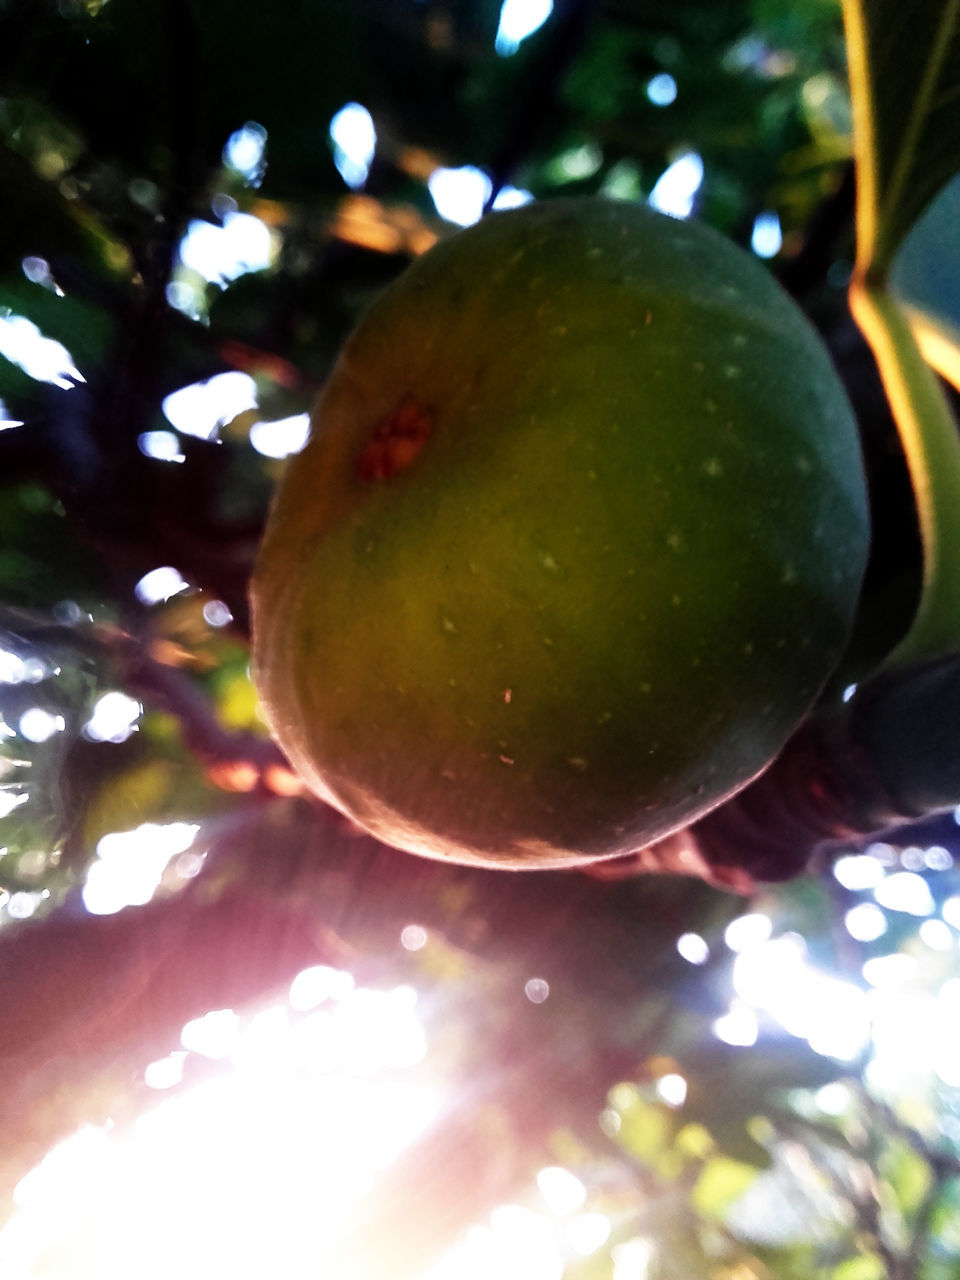 fruit, tree, food and drink, food, healthy eating, freshness, green color, growth, nature, no people, close-up, outdoors, day, branch